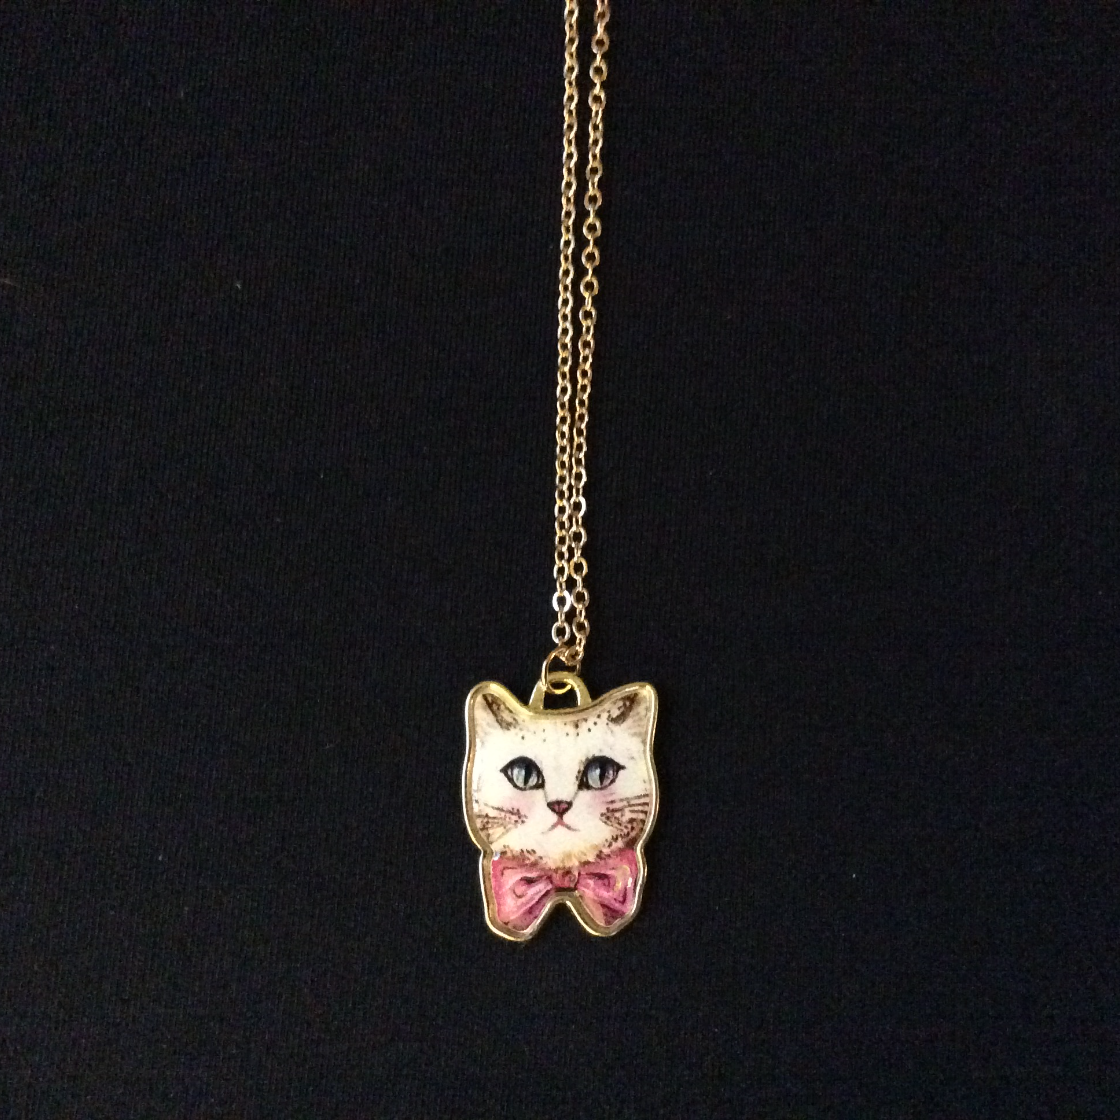 Bowtie Kitty Charm Necklace